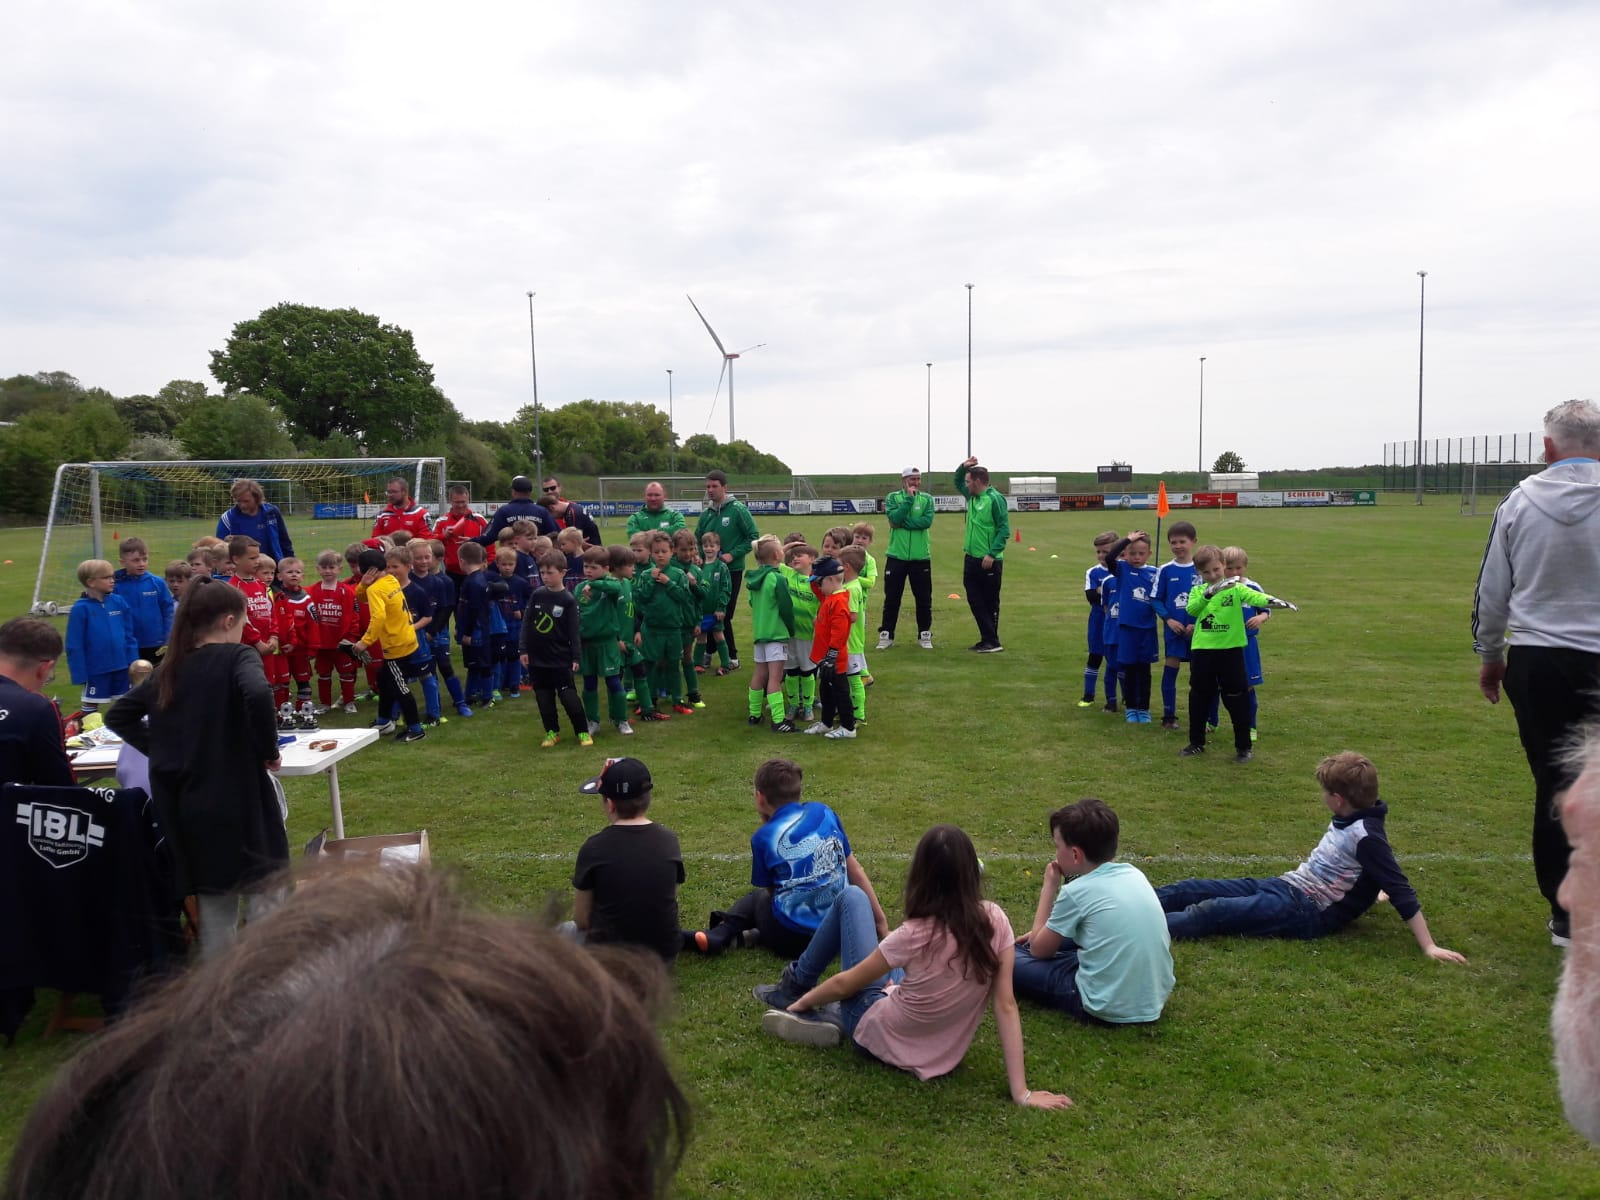 20190511 G-Junioren 2. Platz beim Turnier in Blumberg (3)